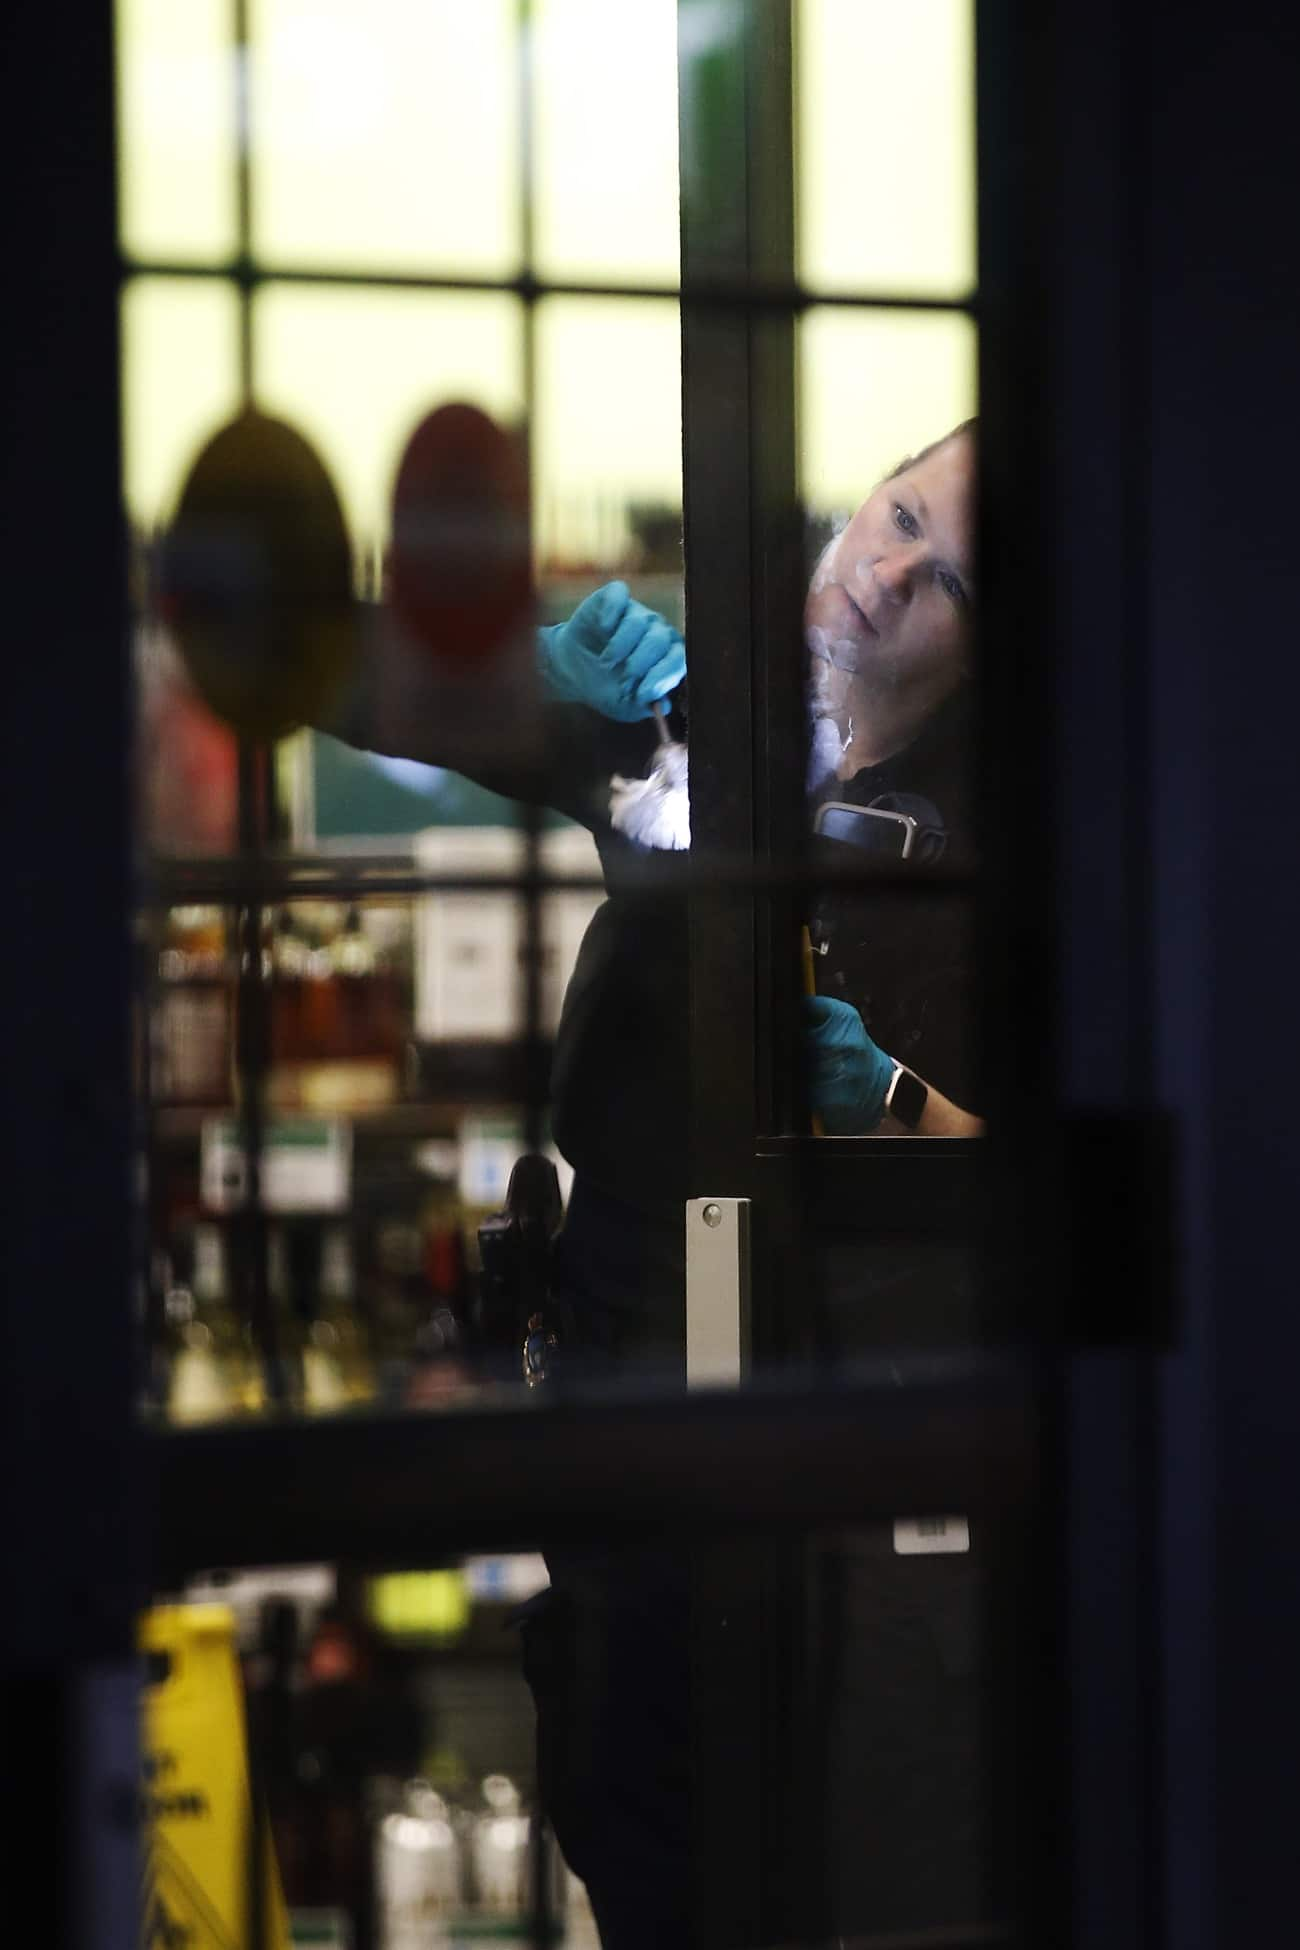 Police dusts for prints as they investigate a robbery at a Liquor Mart on Keewatin in Winnipeg on November 20, 2019. An employee was injured in the robbery. (John Woods / Canadian Press files)